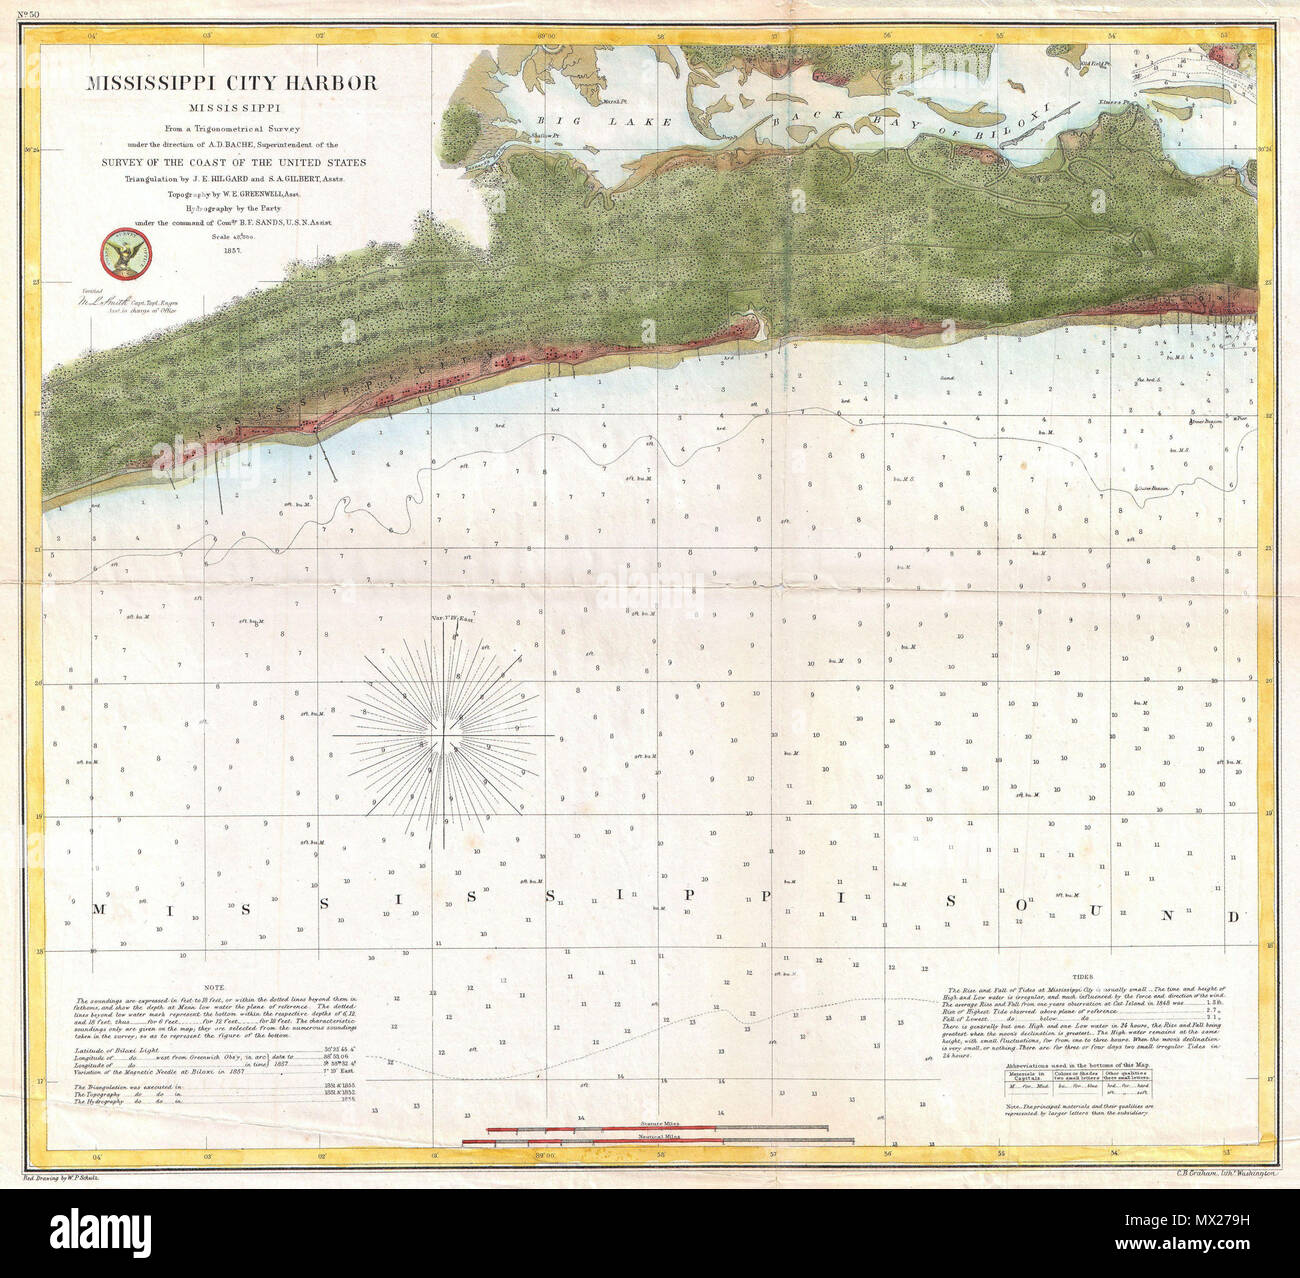 Mississippi City Harbor, Mississippi. English: An attractive ... on county map of mississippi, shape map of mississippi, google map of mississippi, wind map of mississippi, soil map of mississippi, terrain map of mississippi, scale map of mississippi, travel map of mississippi, minerals map of mississippi, relief map of mississippi, temperature map of mississippi, brochure of mississippi, demographics of mississippi, street map of mississippi, agriculture map of mississippi, precipitation map of mississippi,